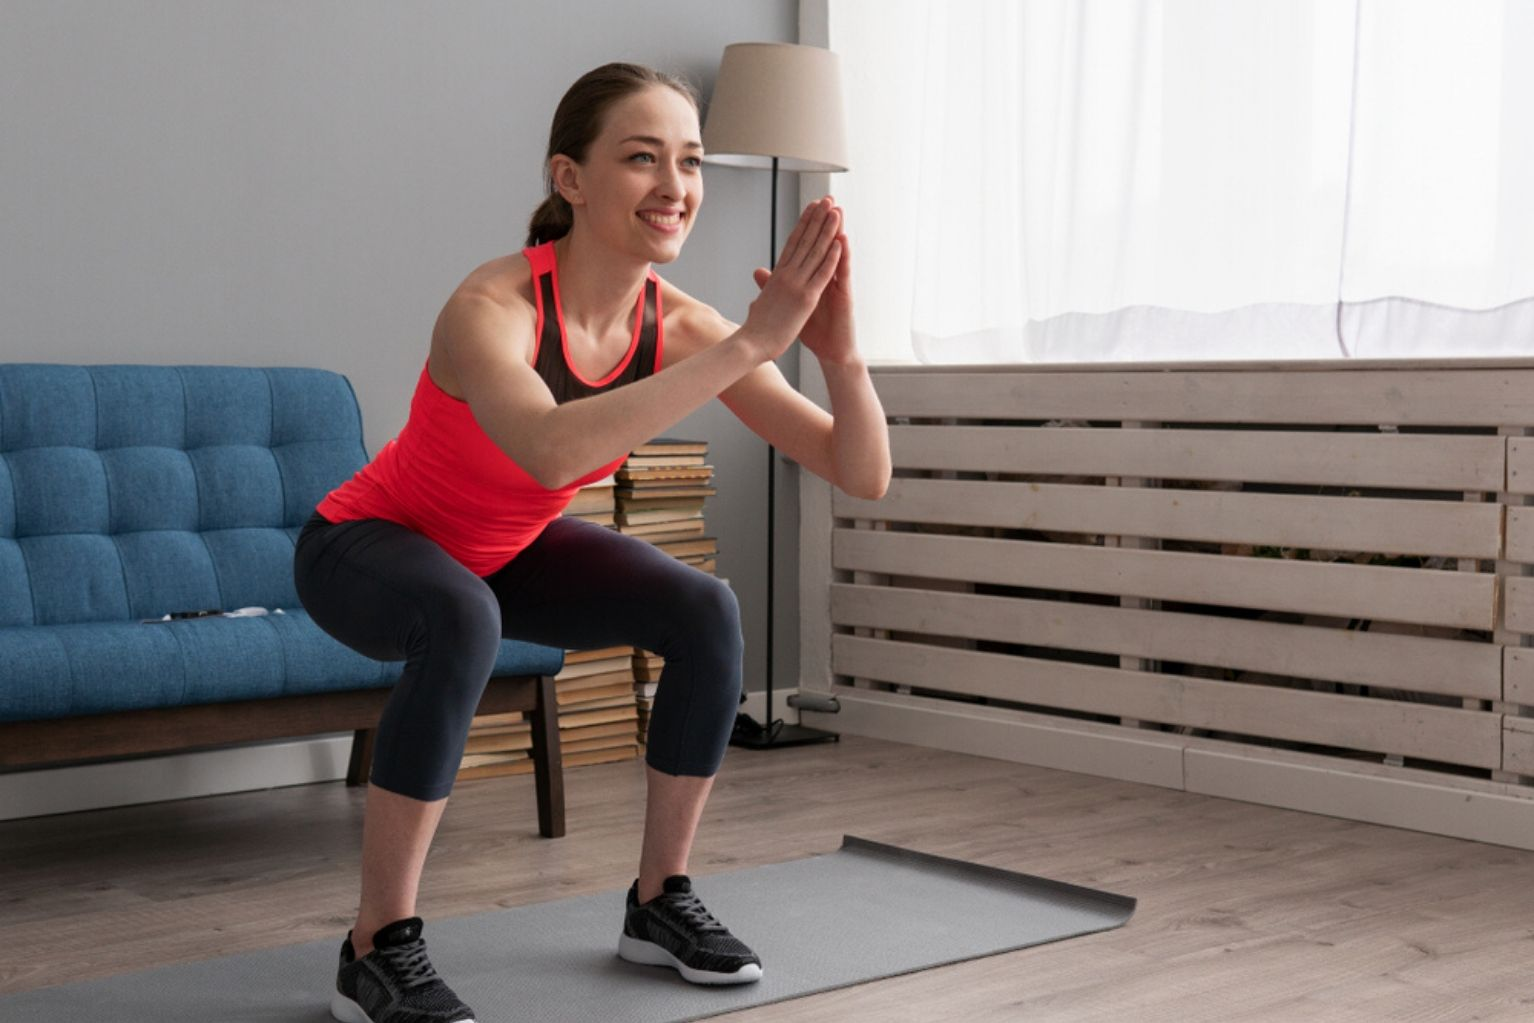 Young athletic woman doing traditional squats in her home